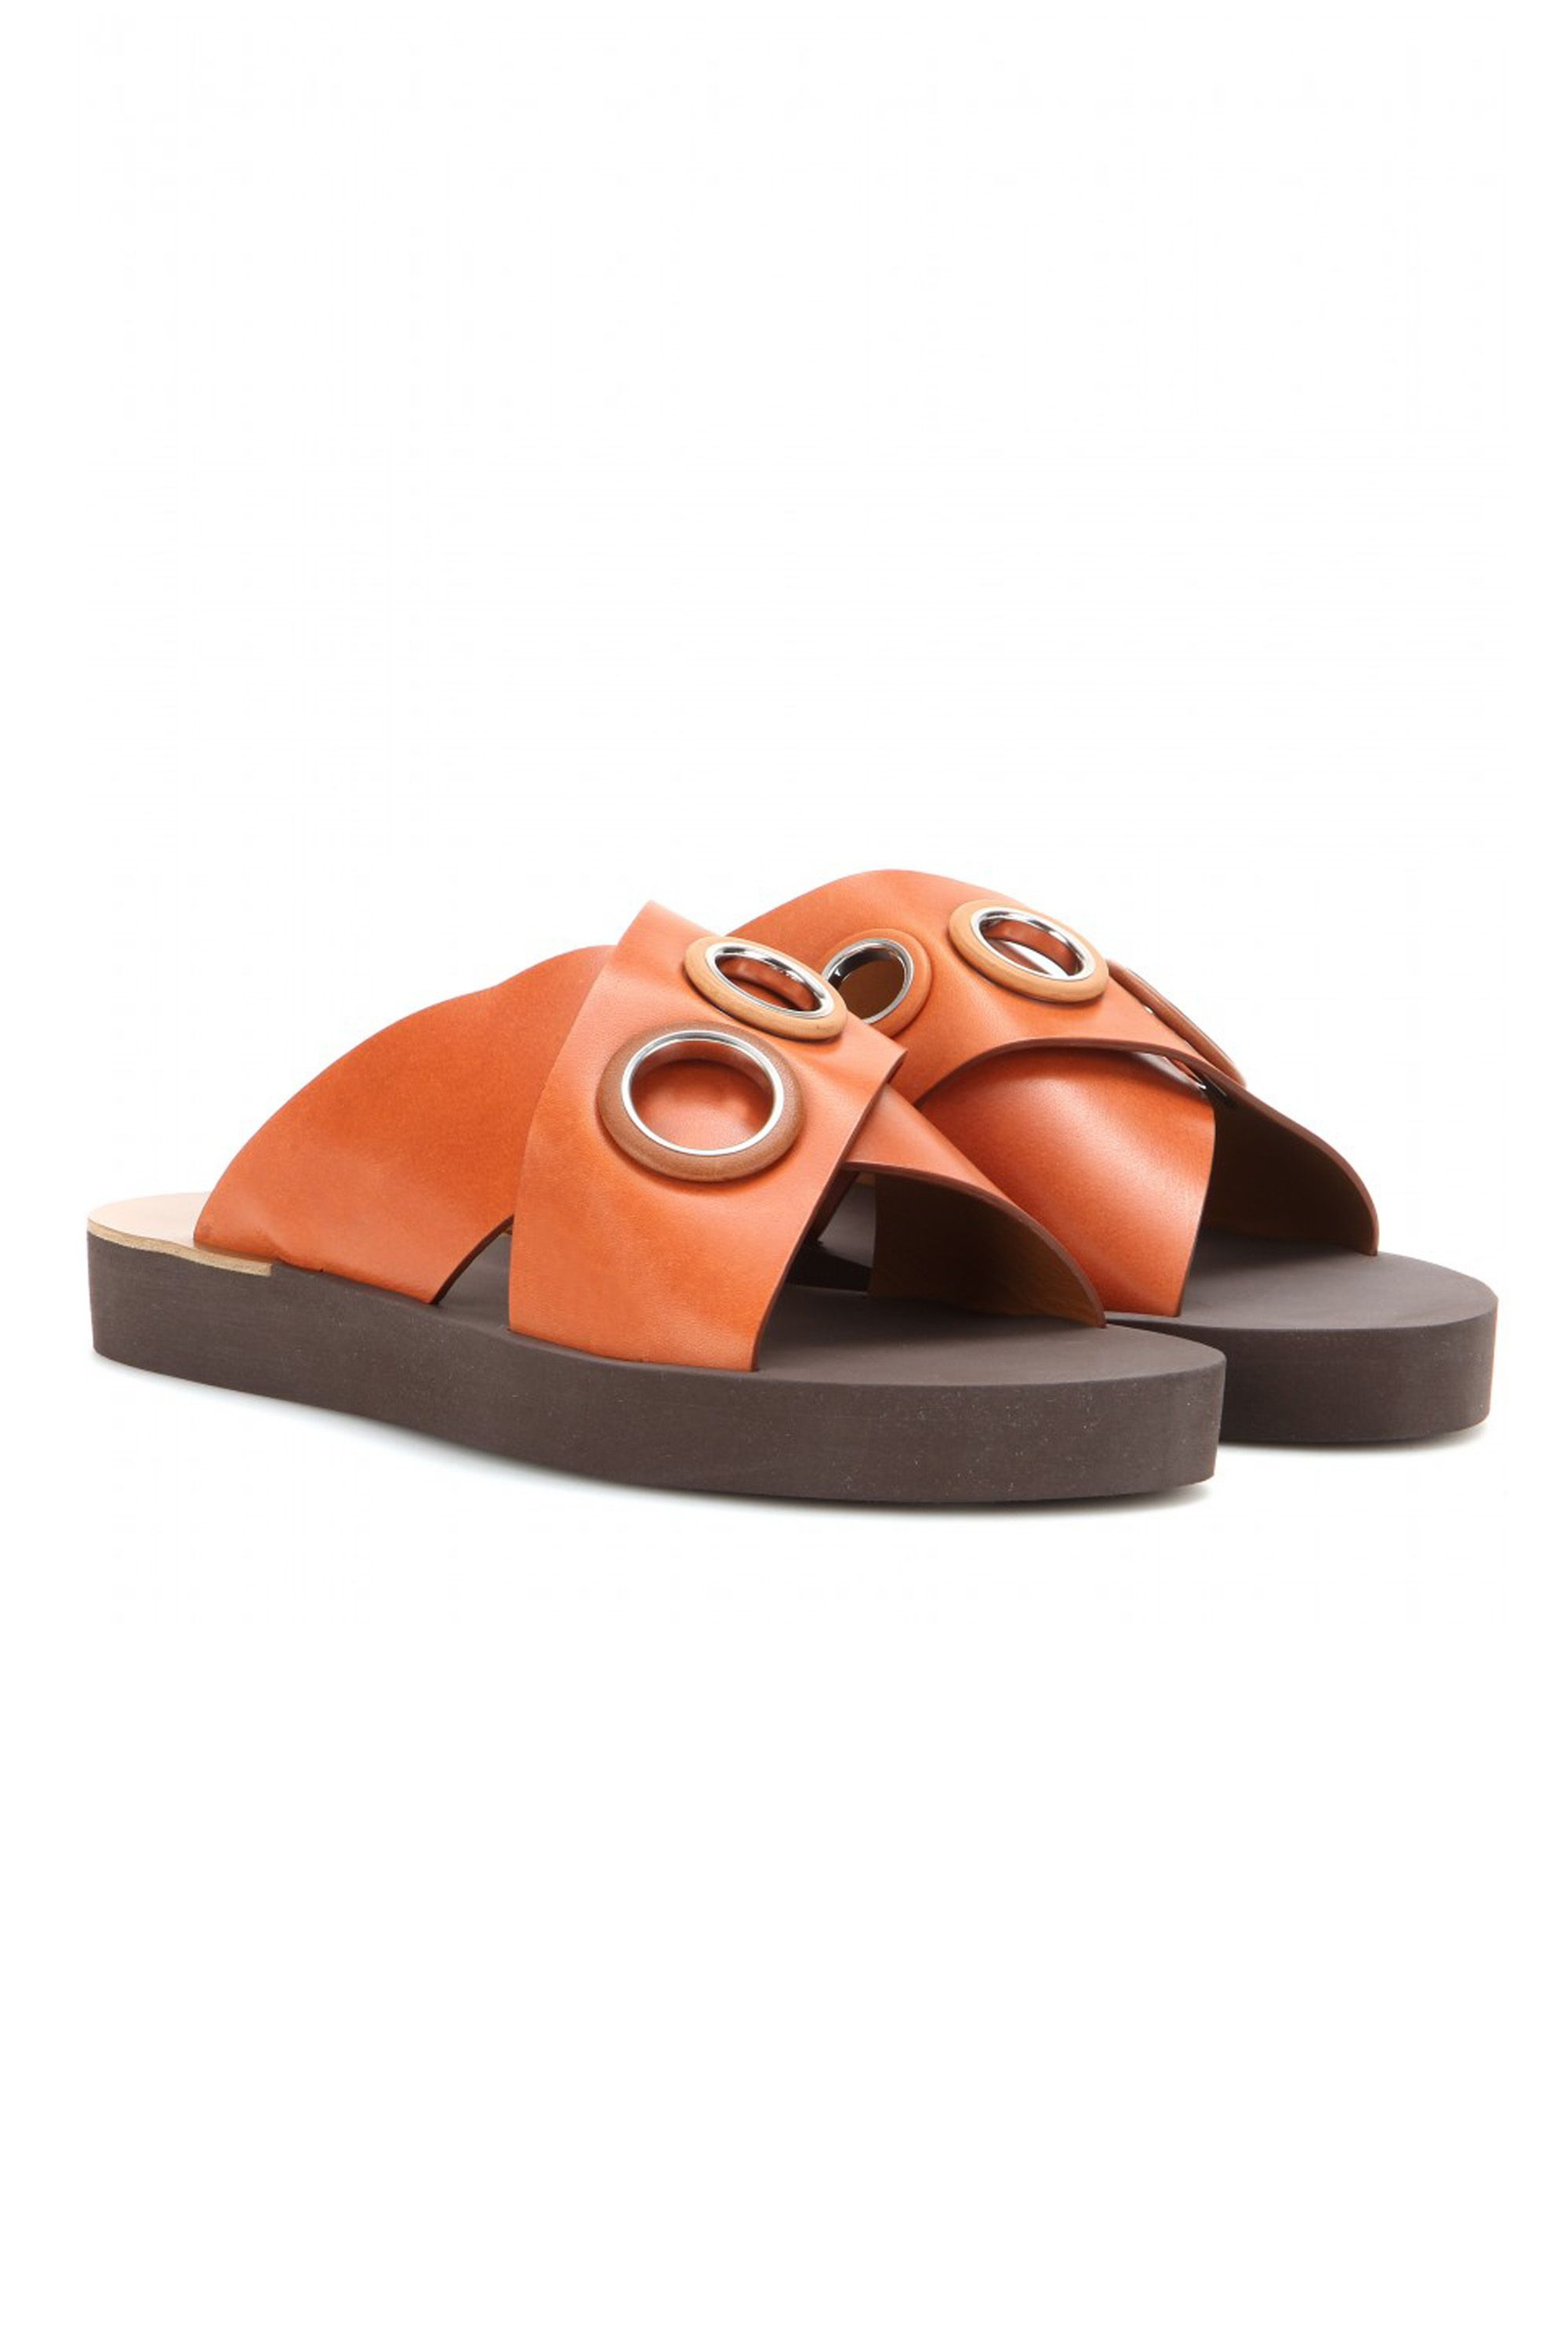 "Chloé Embellished Leather Sandals, $460; <a href=""http://www.mytheresa.com/en-us/embellished-leather-sandals-413755.html"" target=""_blank"">mytheresa.com</a>"